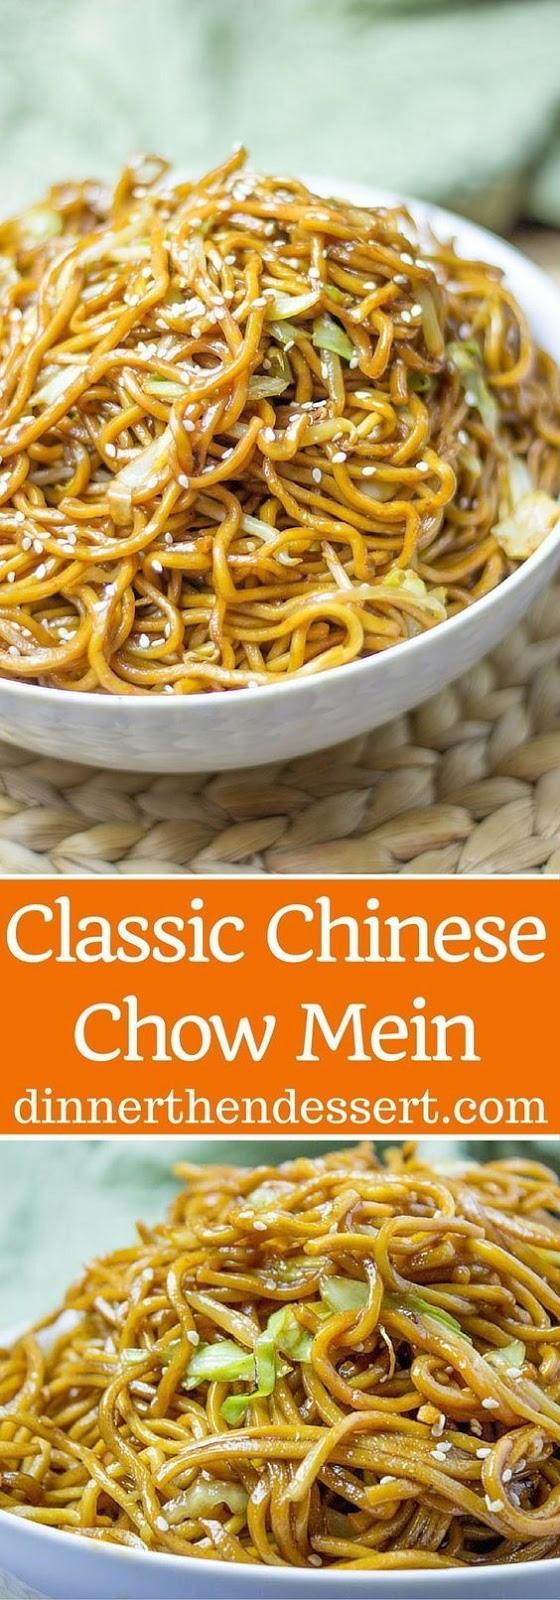 CLASSIC CHINESE CHOW MEIN #recipes #chineserecipes #food #foodporn #healthy #yummy #instafood #foodie #delicious #dinner #breakfast #dessert #lunch #vegan #cake #eatclean #homemade #diet #healthyfood #cleaneating #foodstagram